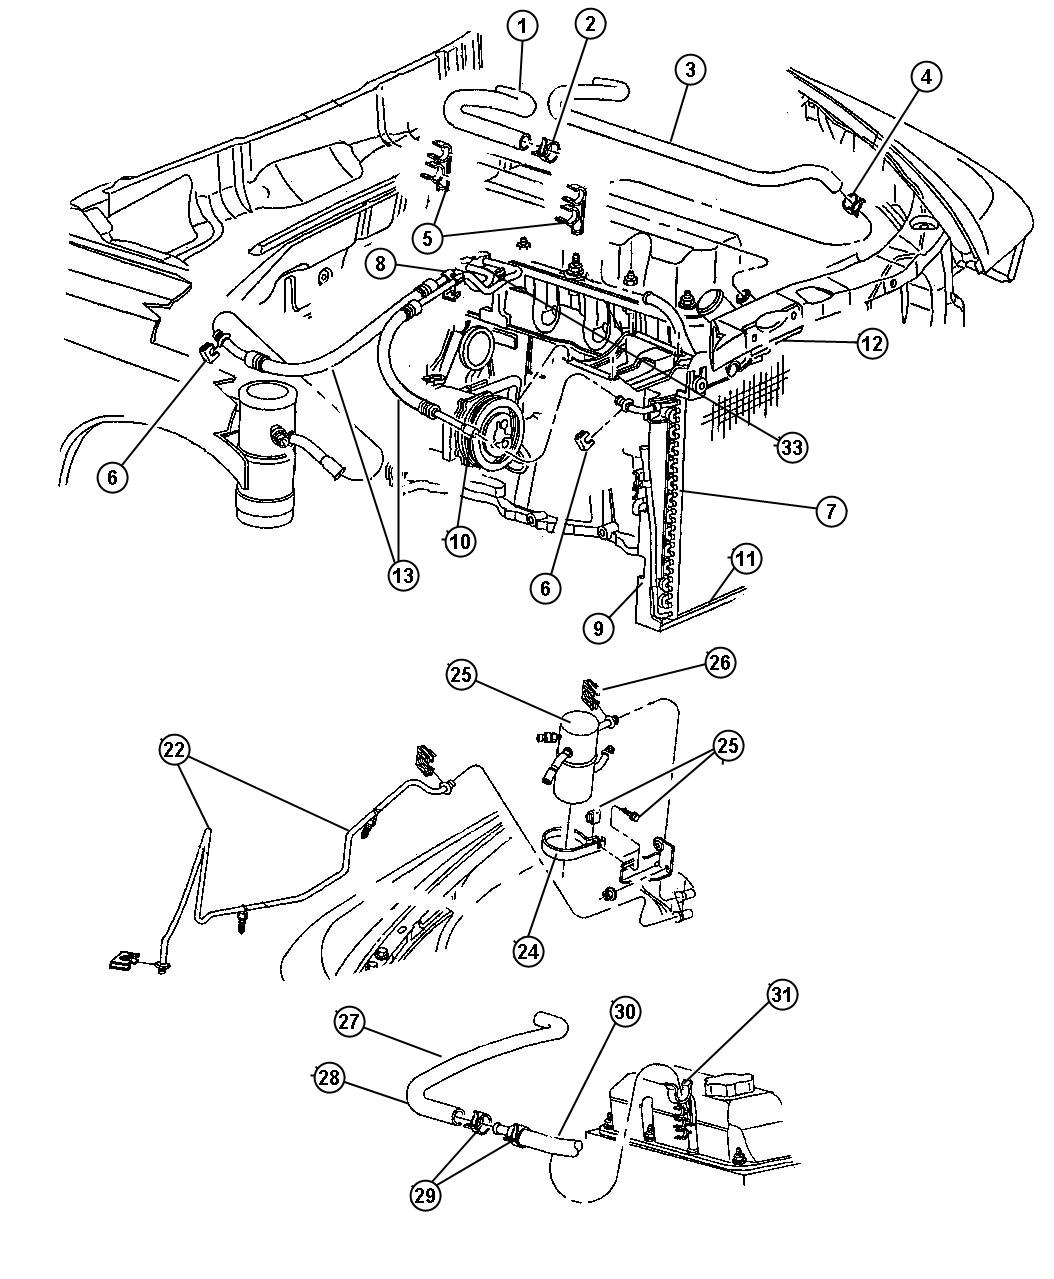 1997 Dodge Dakota Line. Used for: a/c suction and ...